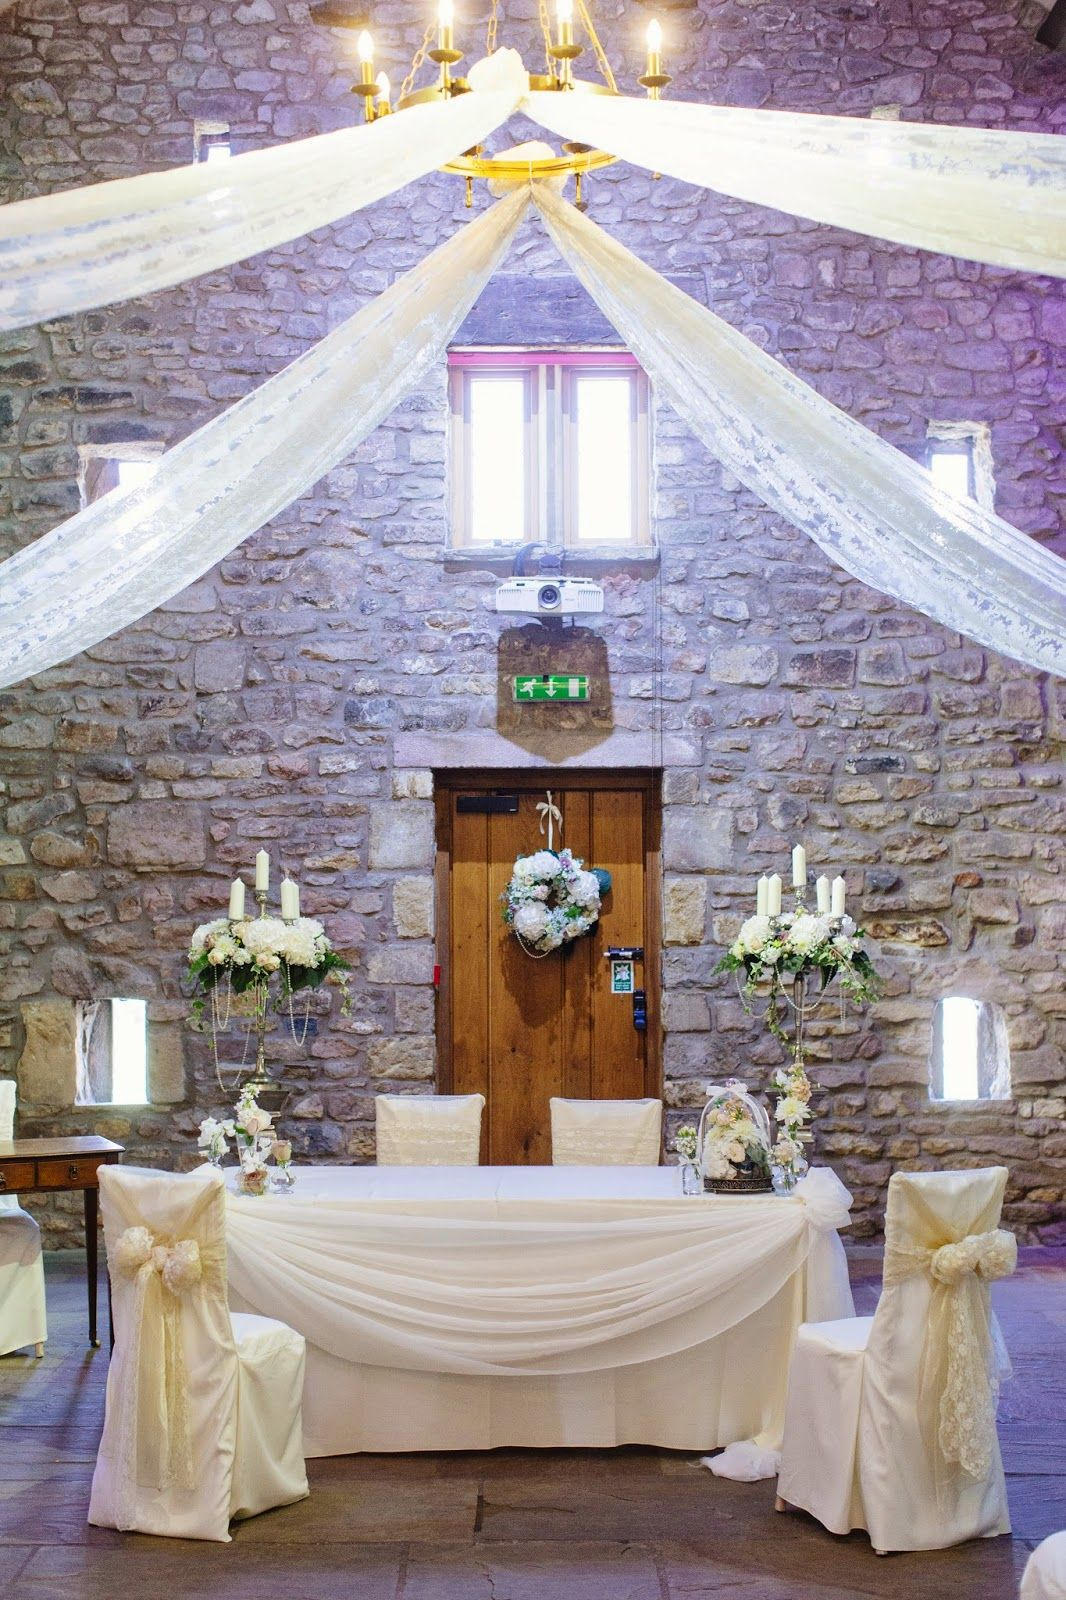 The scene was set in the fabulous tithe barn at browsholme hall with the beautiful wedding of emma james at browsholme hall tithe barn featuring some beautiful images from lottie designs izmirmasajfo